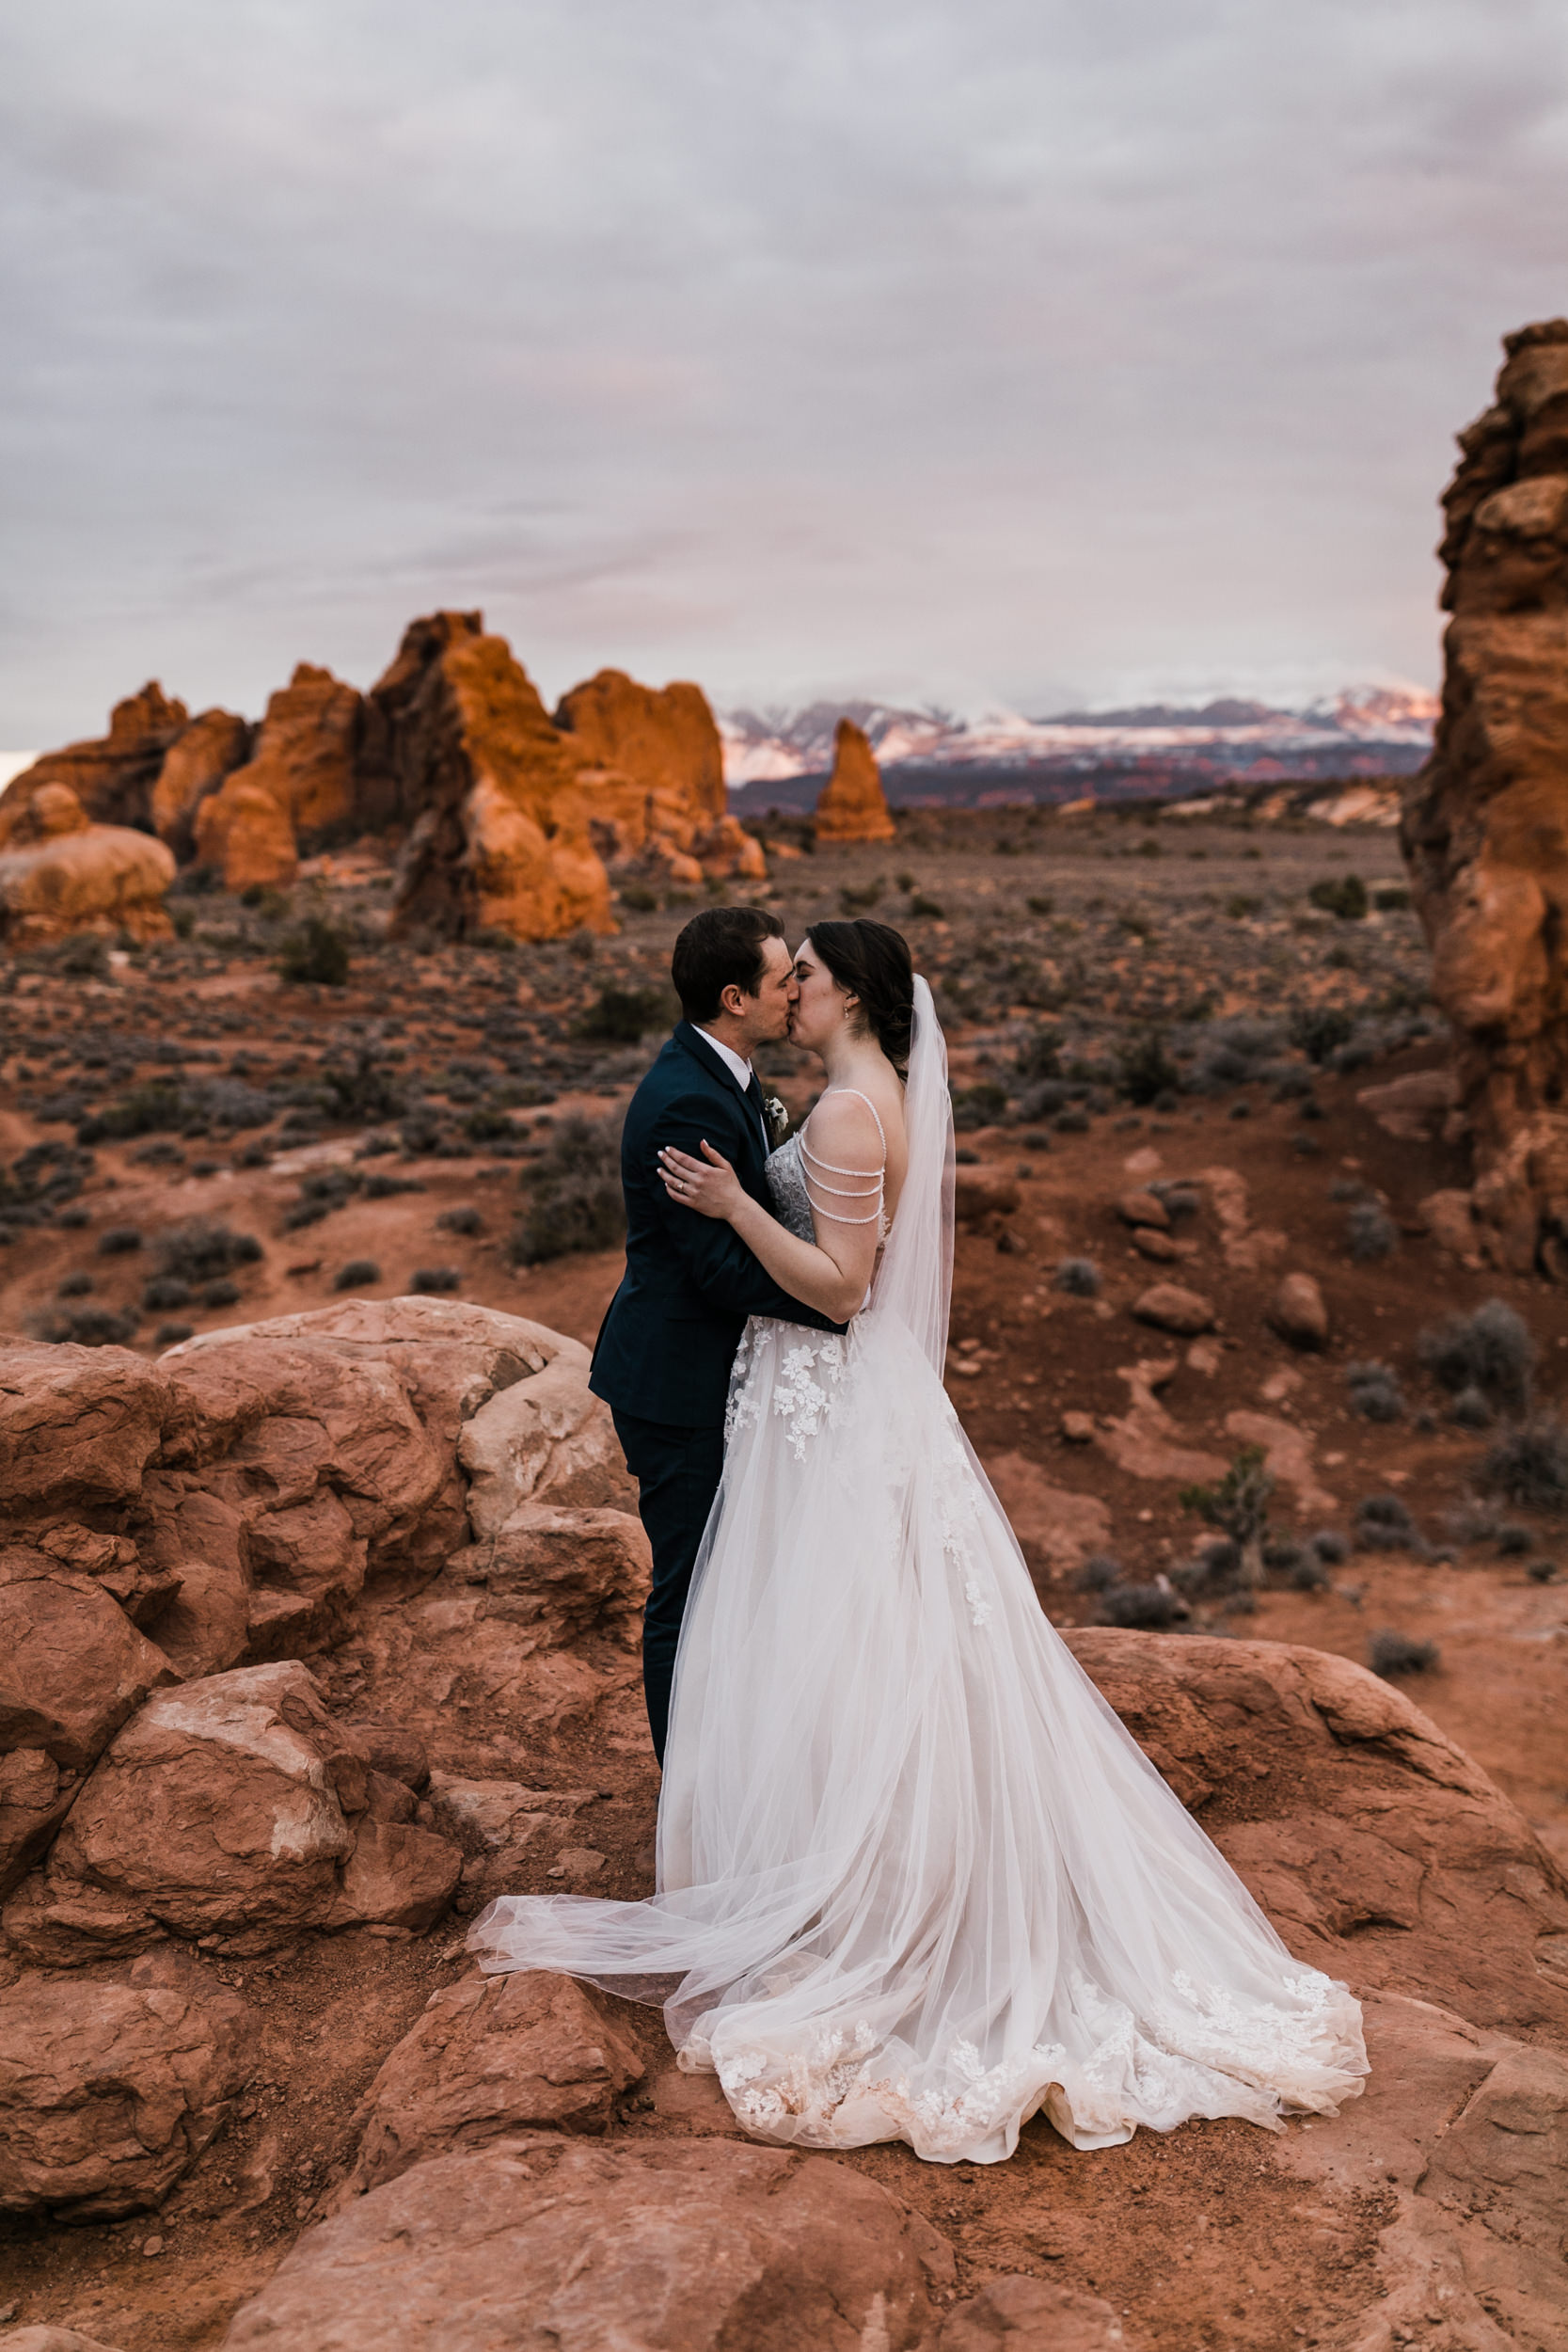 A little blue hour action on their wedding day. They eloped to Moab from Minnesota and brought along a small group of friends and family.